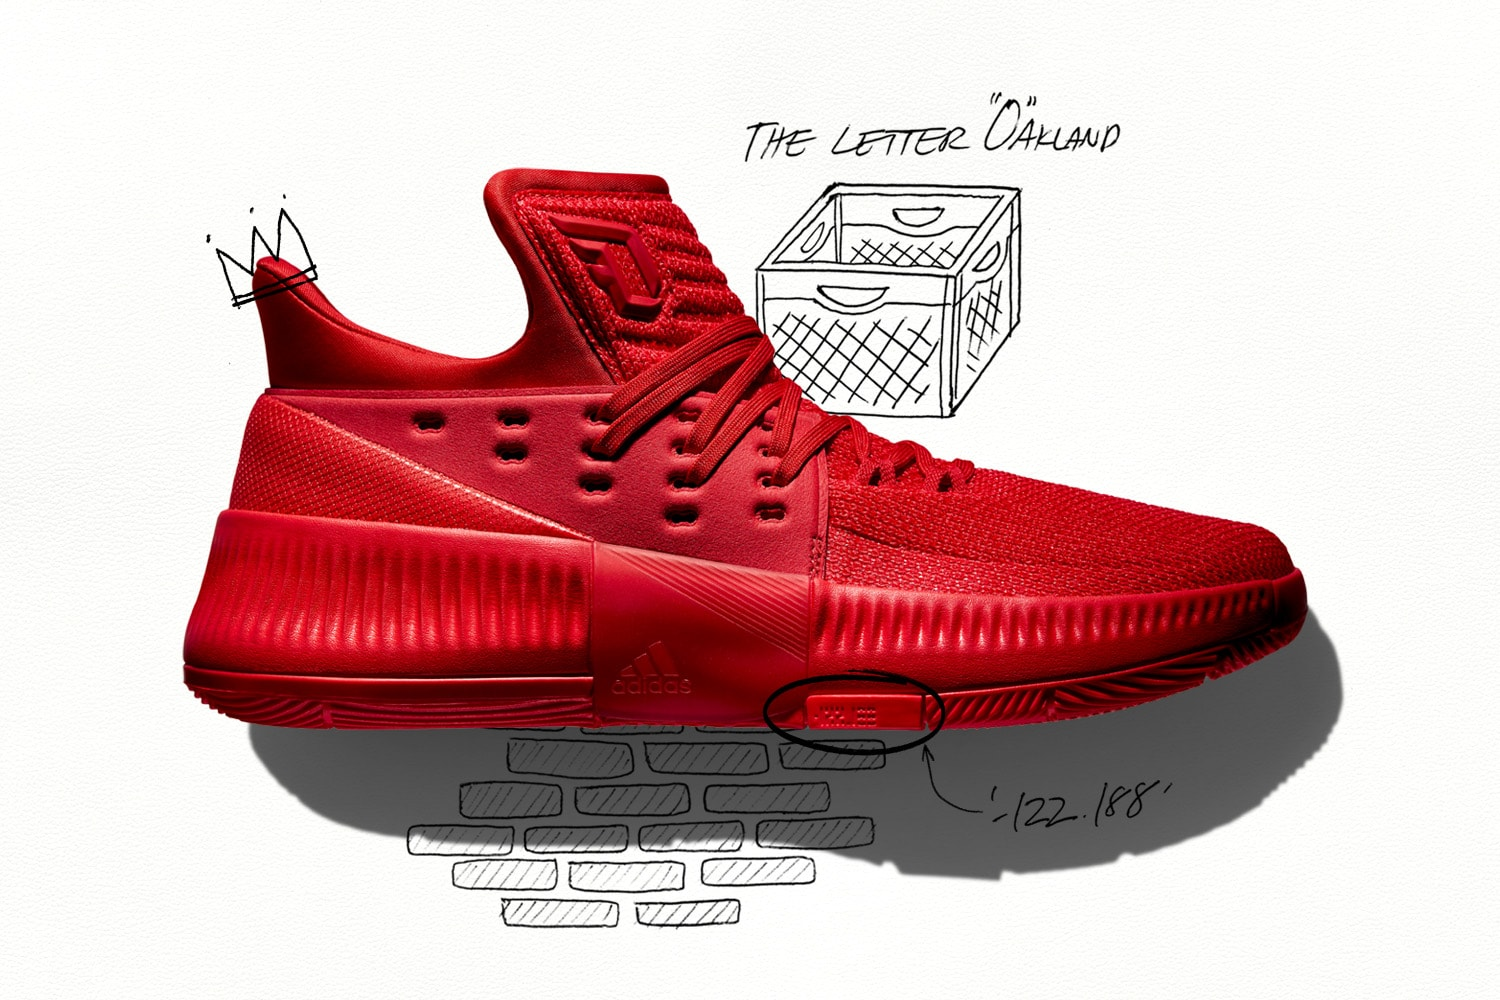 half off 4c28f 1587d Adidas releases the first three colorways of the third iteration of Damian  Lillard s signature sneaker,